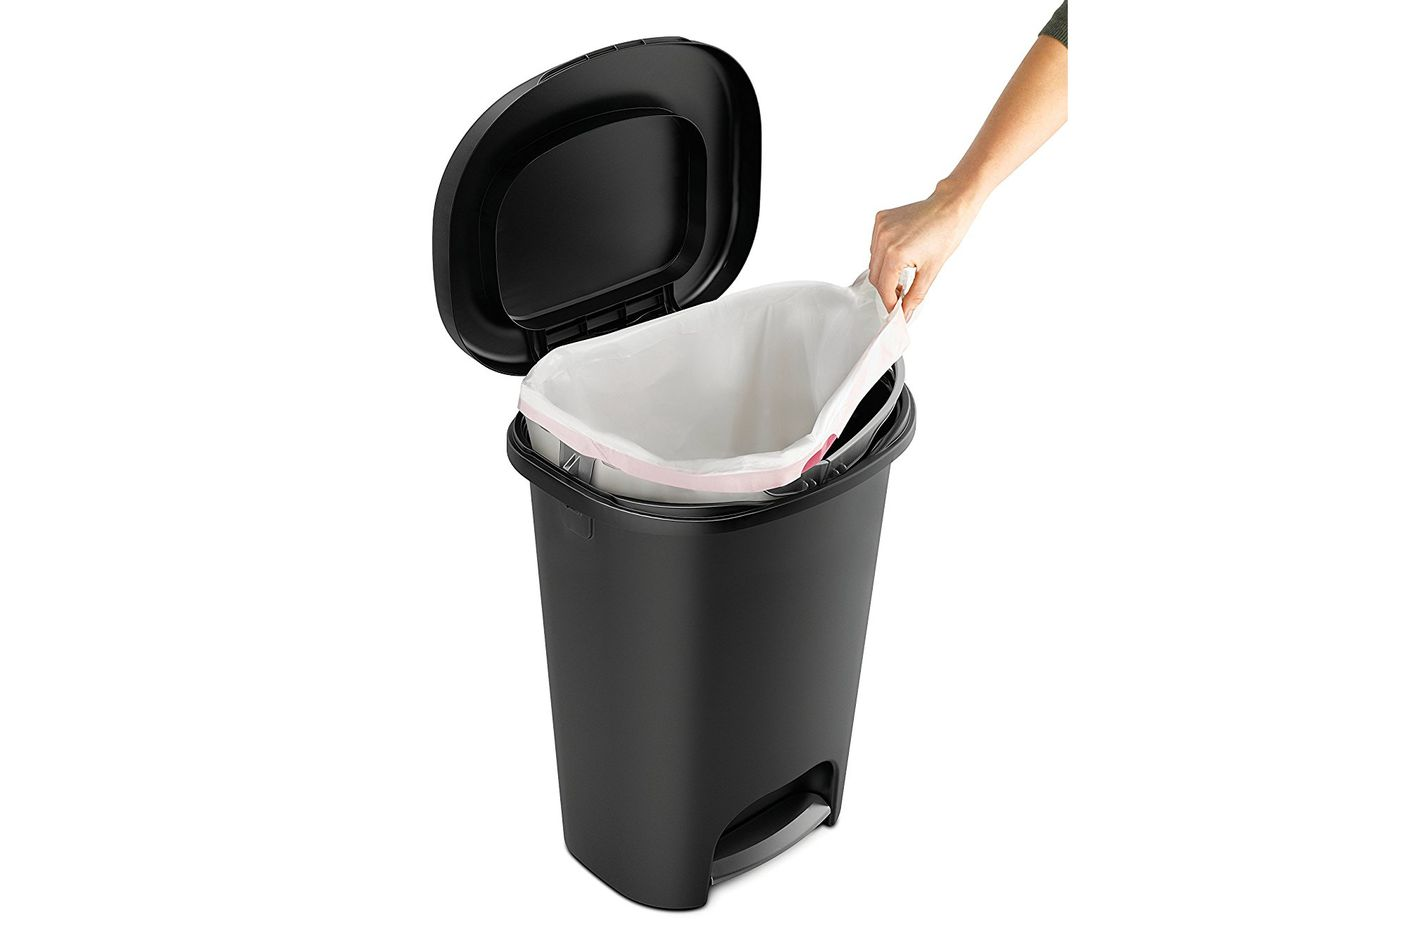 Best Trash Cans On Amazon According To Reviewers